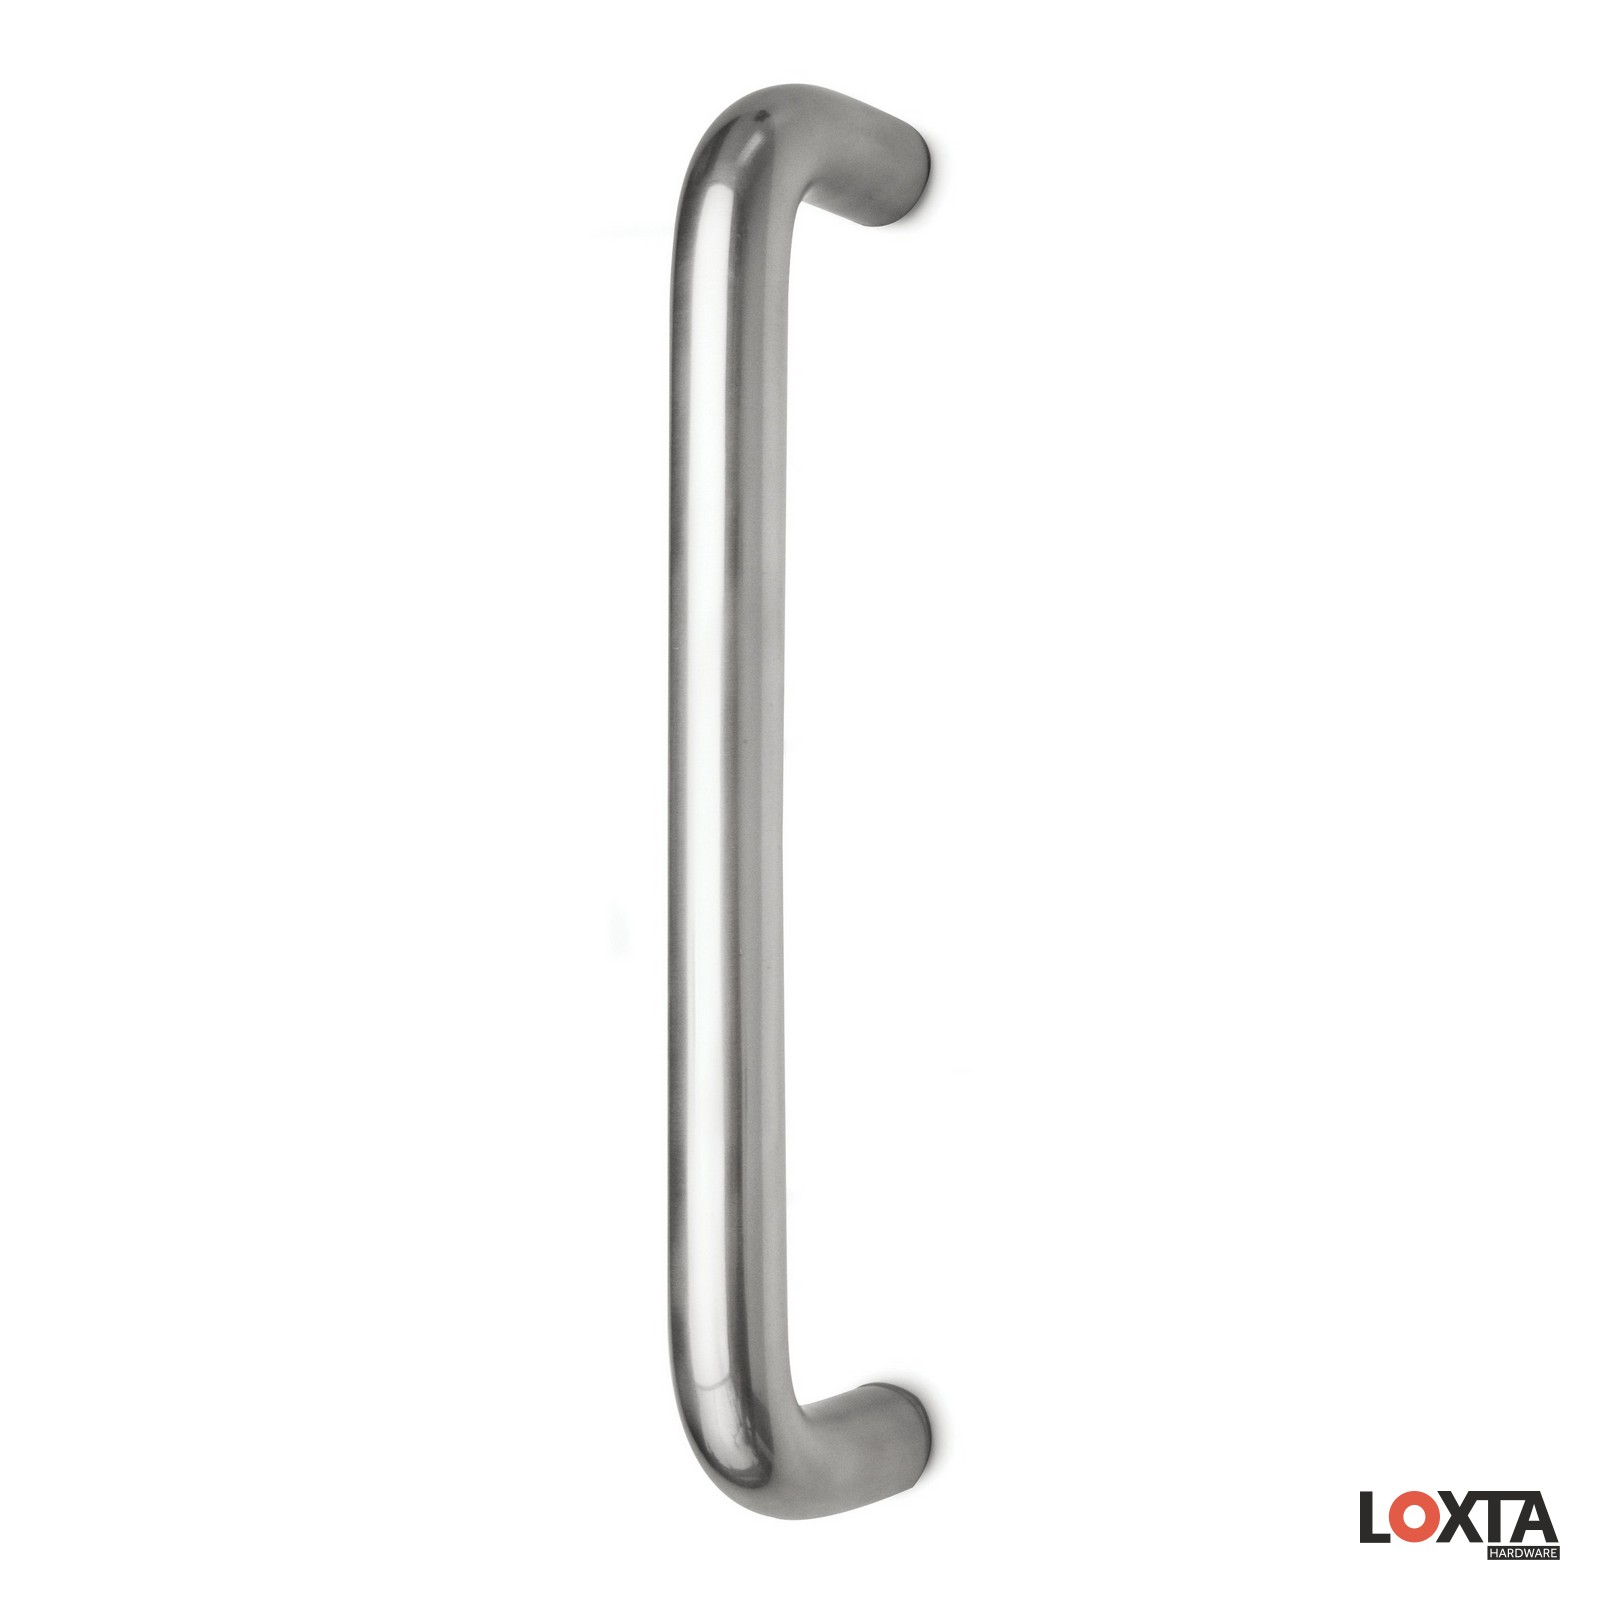 PR32013 25mm Dia Bolt Through Pull Handles, Stainless Steel, 225-600mm